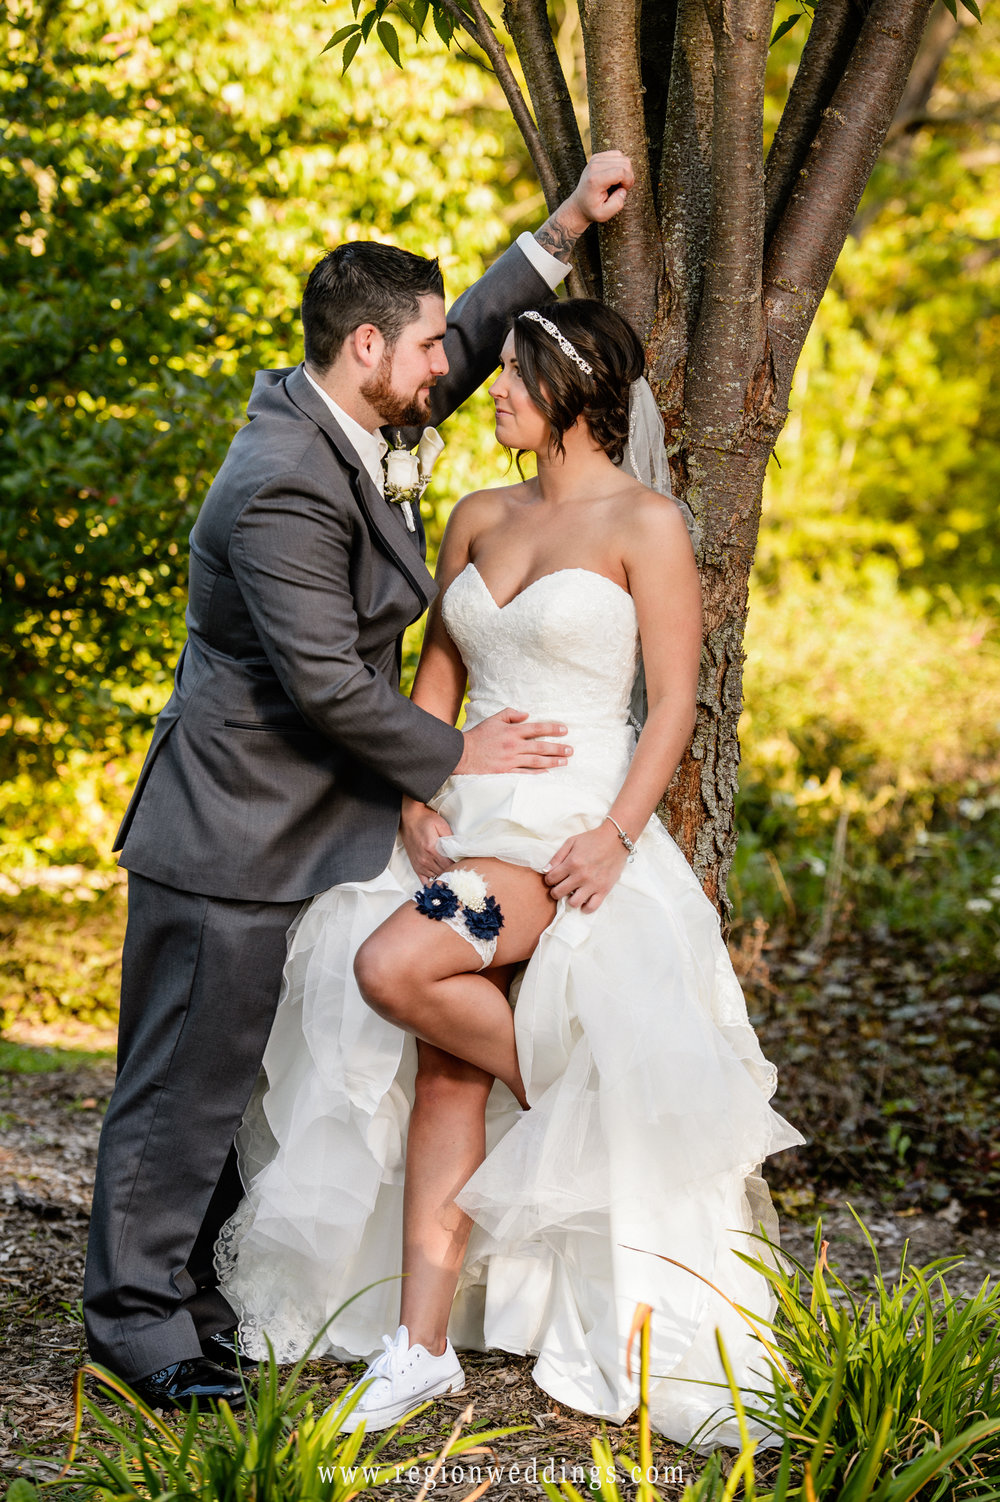 The bride shows off her garter as she shares a romantic moment with her groom.